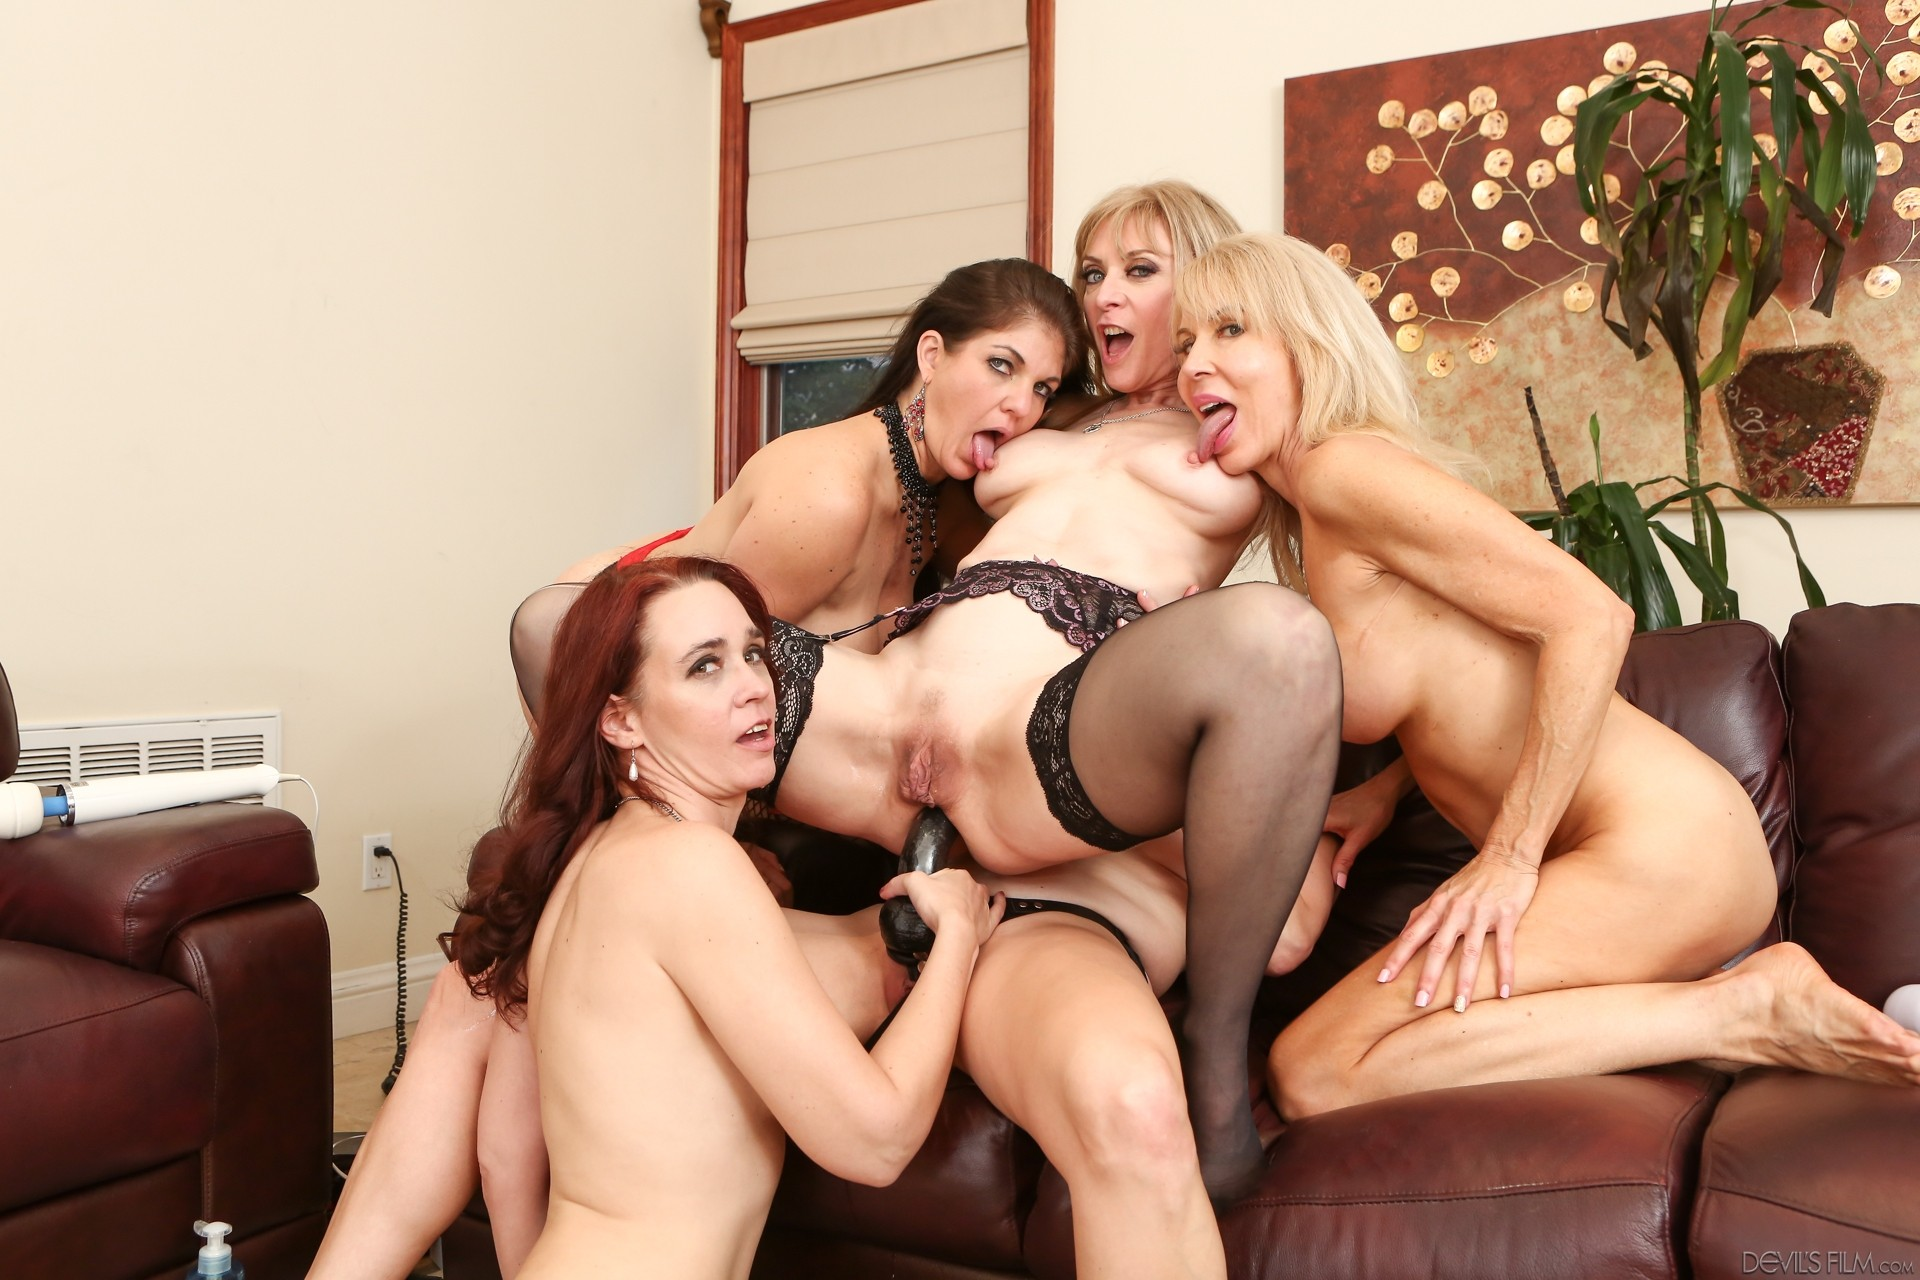 Ashlyn Gere, Bionca, Nina Hartley In Lesbians Make Love In Hot Classic Xxx Three